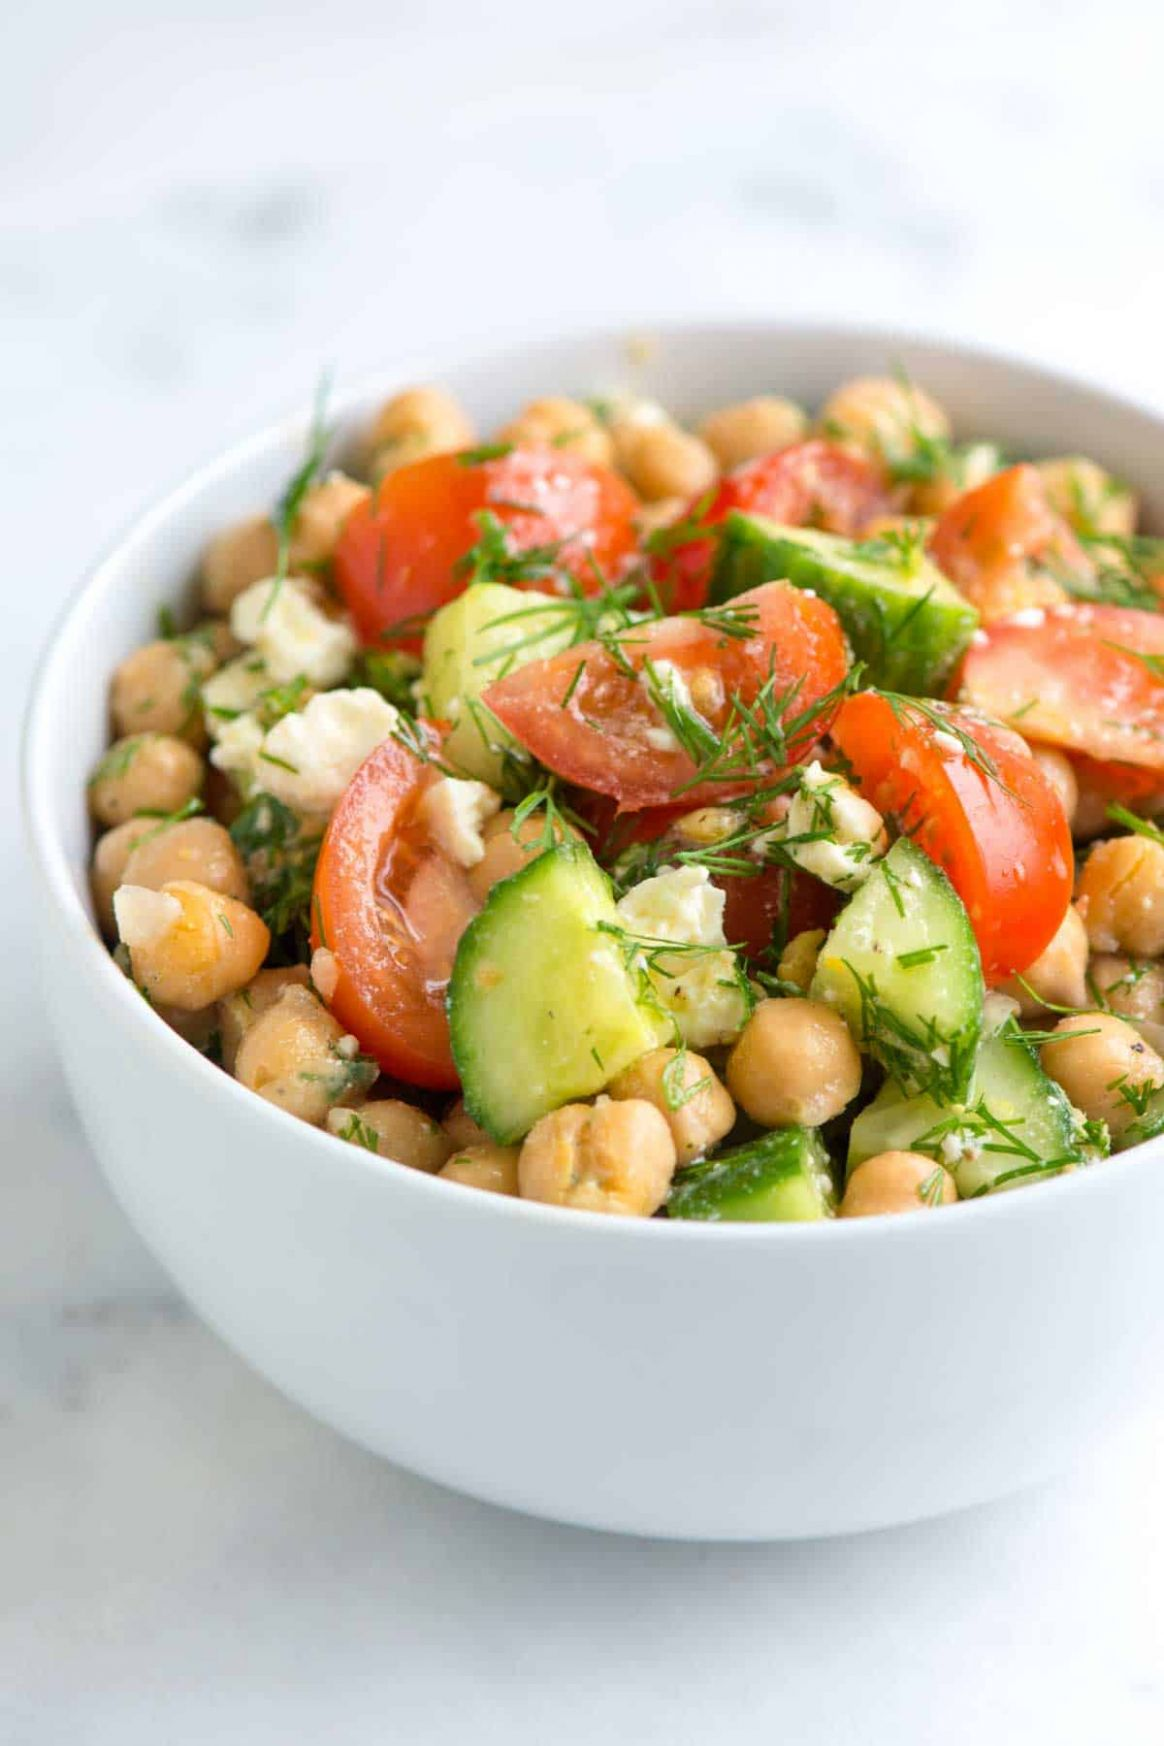 Easy Chickpea Salad with Lemon and Dill - Salad Recipes Chickpeas